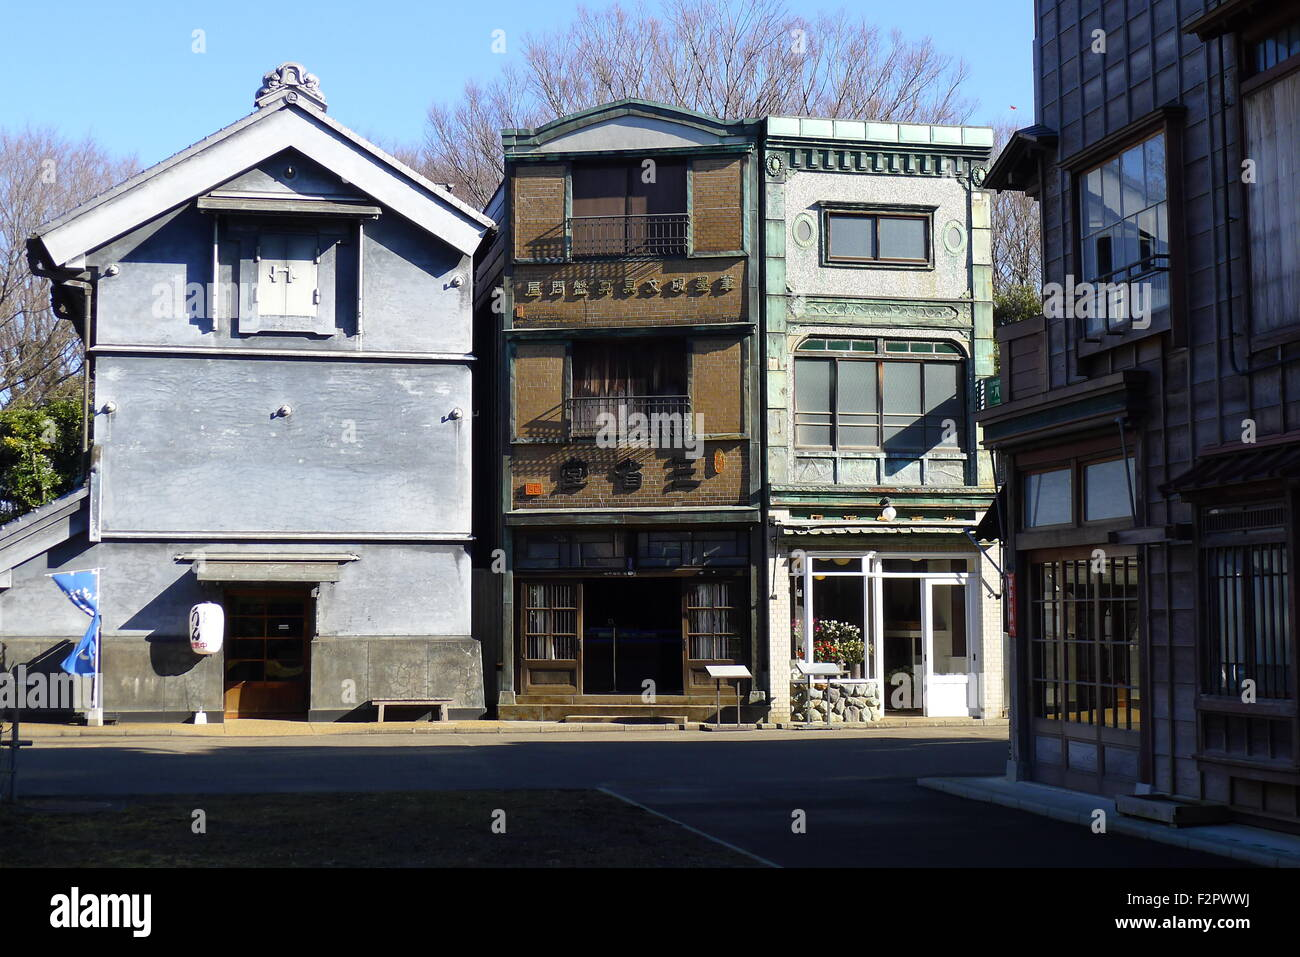 Japanese Billboard Architecture Buildings and Traditional Storehouse at Edo-Tokyo Open Air Architectural Museum - Stock Image